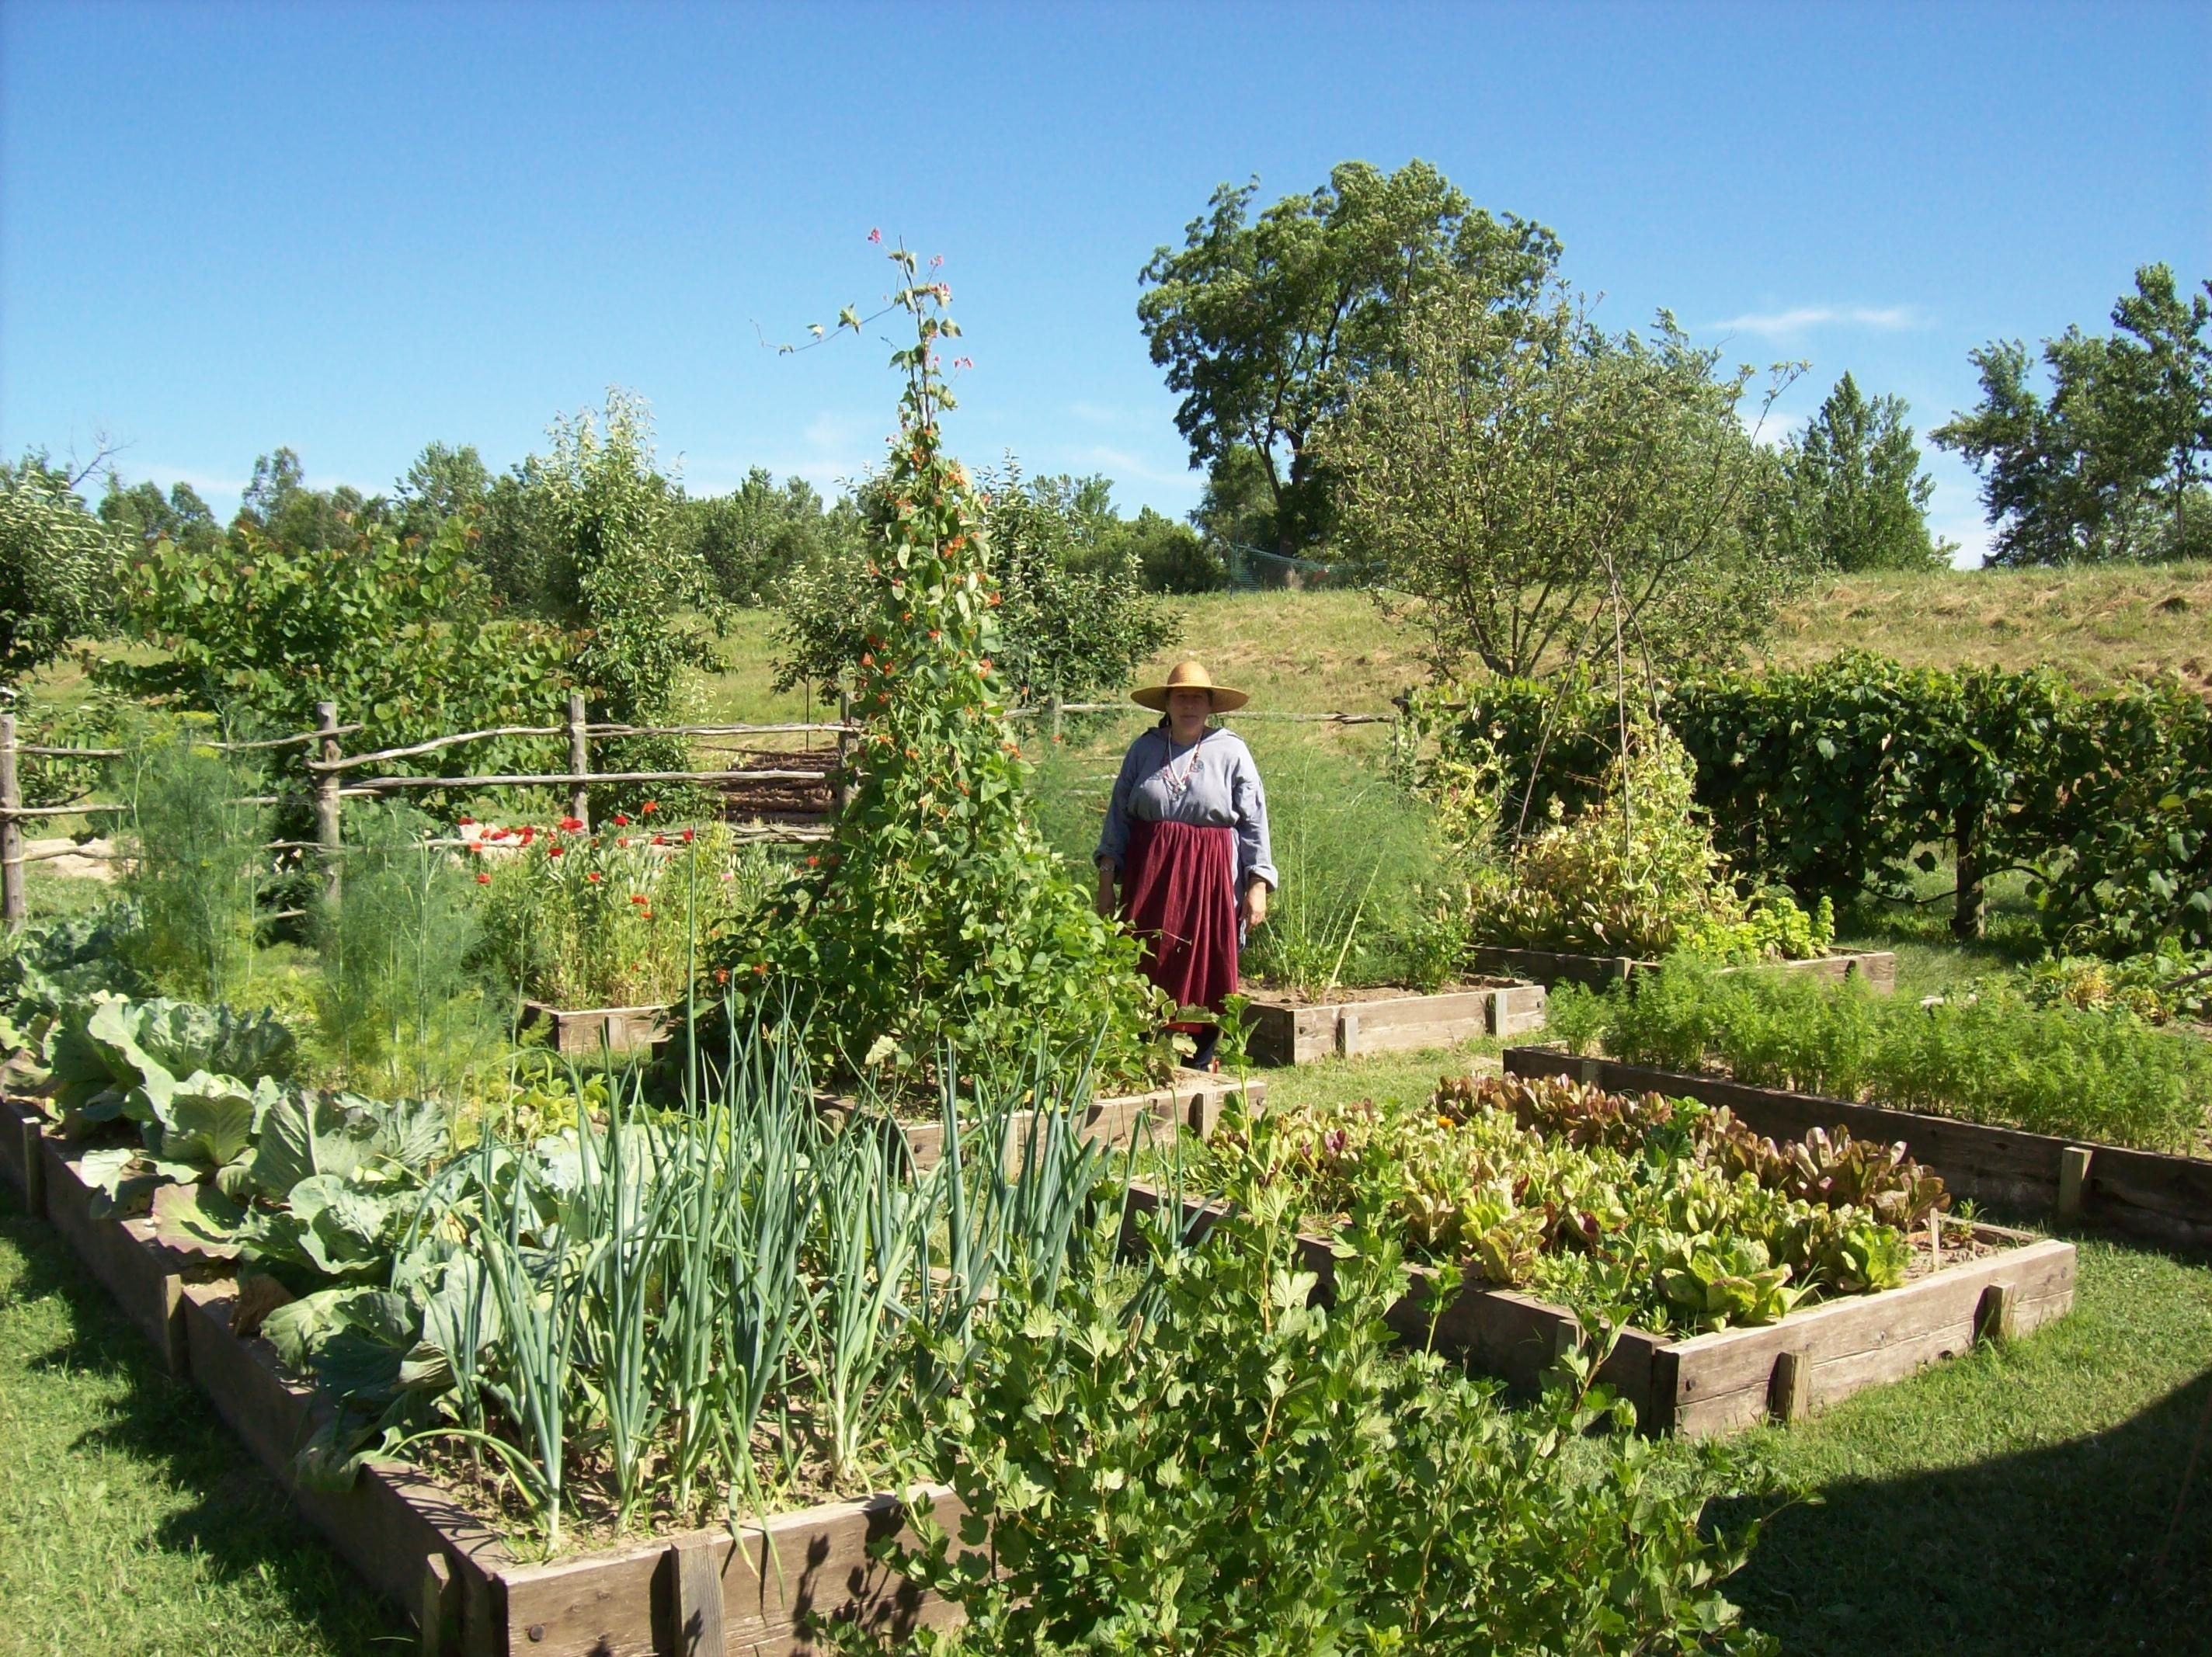 Country vegetable gardens - Find This Pin And More On Country Garden